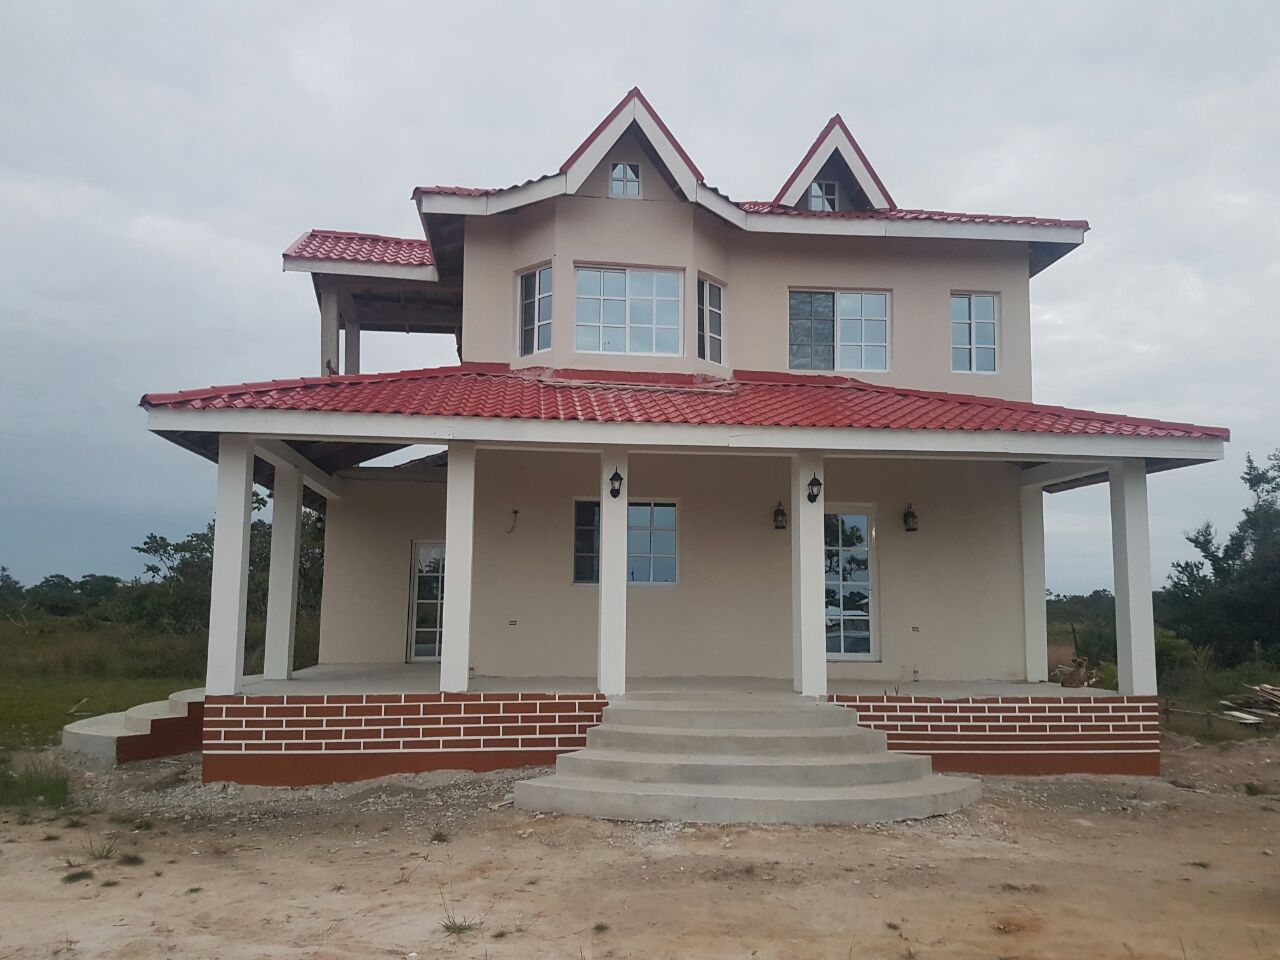 3 Bedroom 2.5 Bath House for Sale